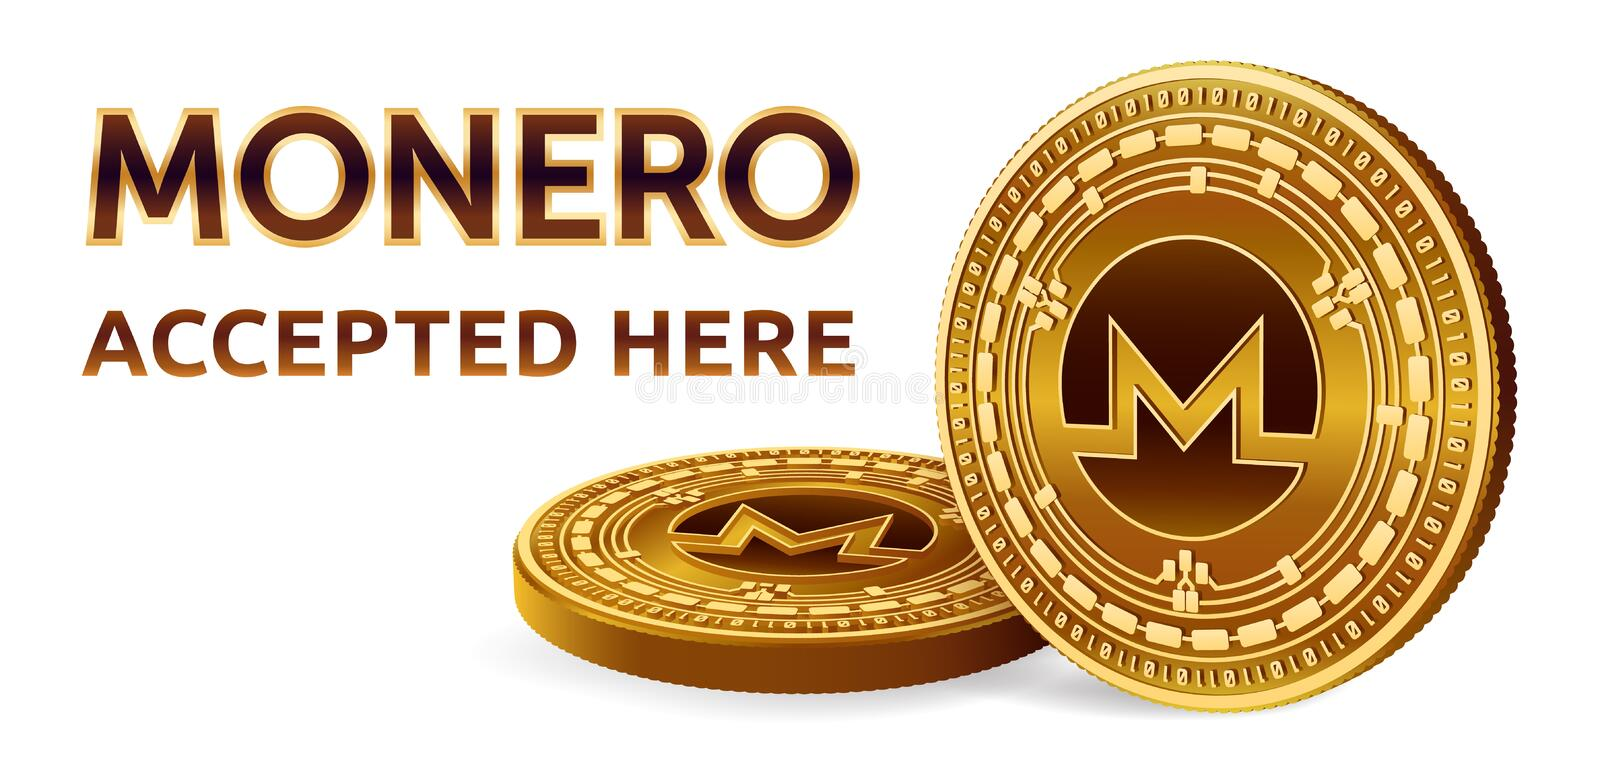 Monero. Accepted sign emblem. Crypto currency. Golden coins with Monero symbol isolated on white background. 3D isometric Physical stock illustration